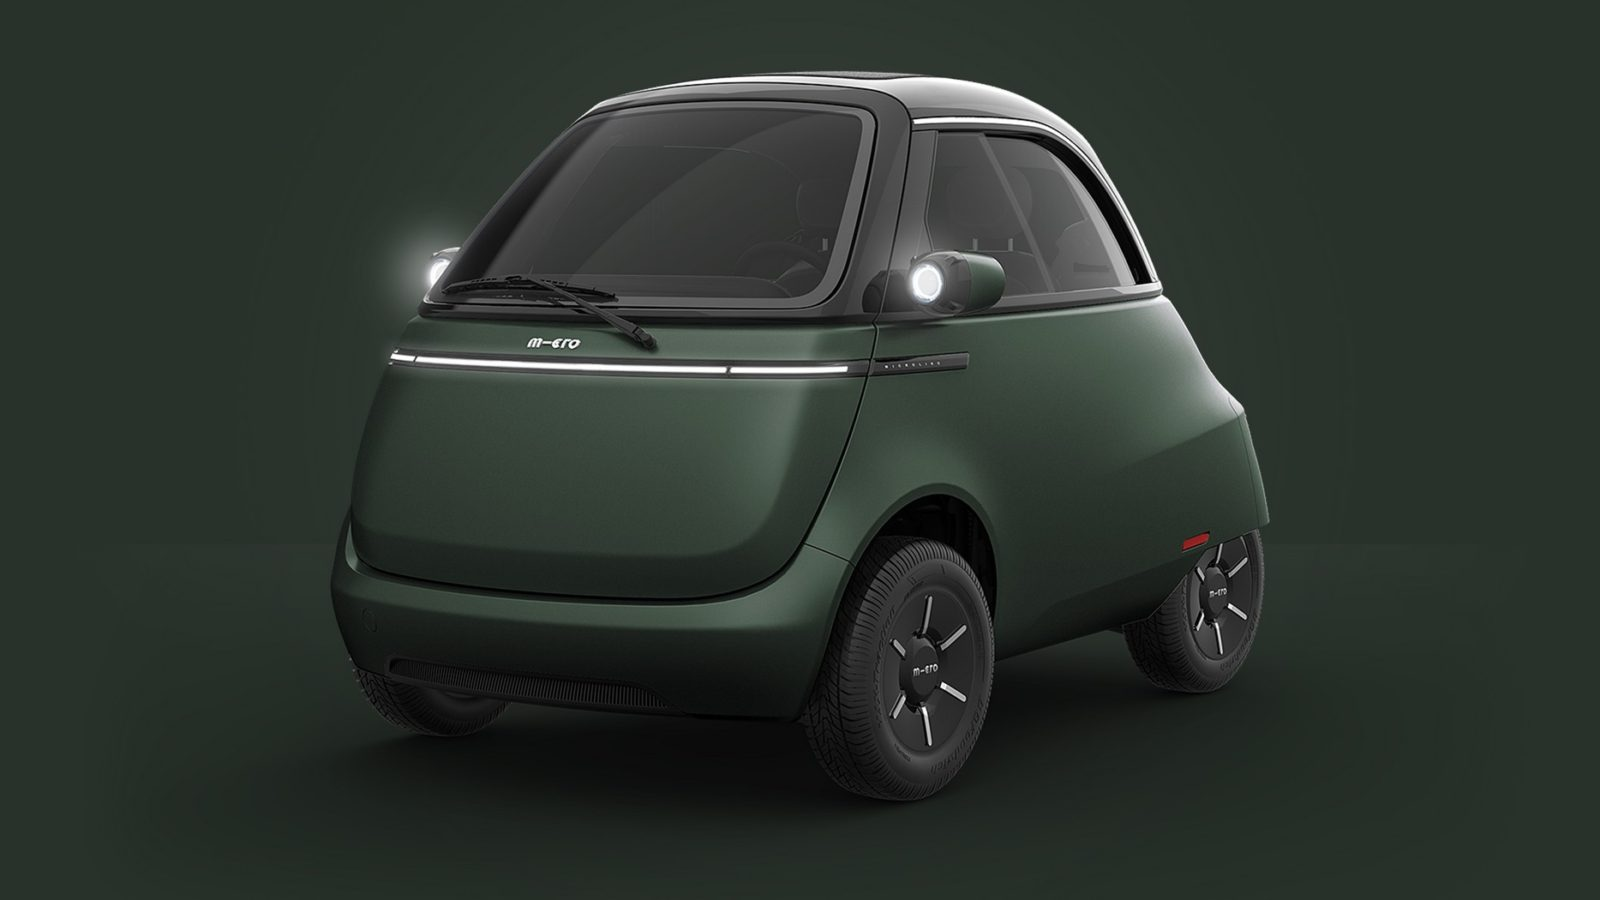 production-version-of-microlino-2.0-makes-its-premiere-at-the-iaa-2021